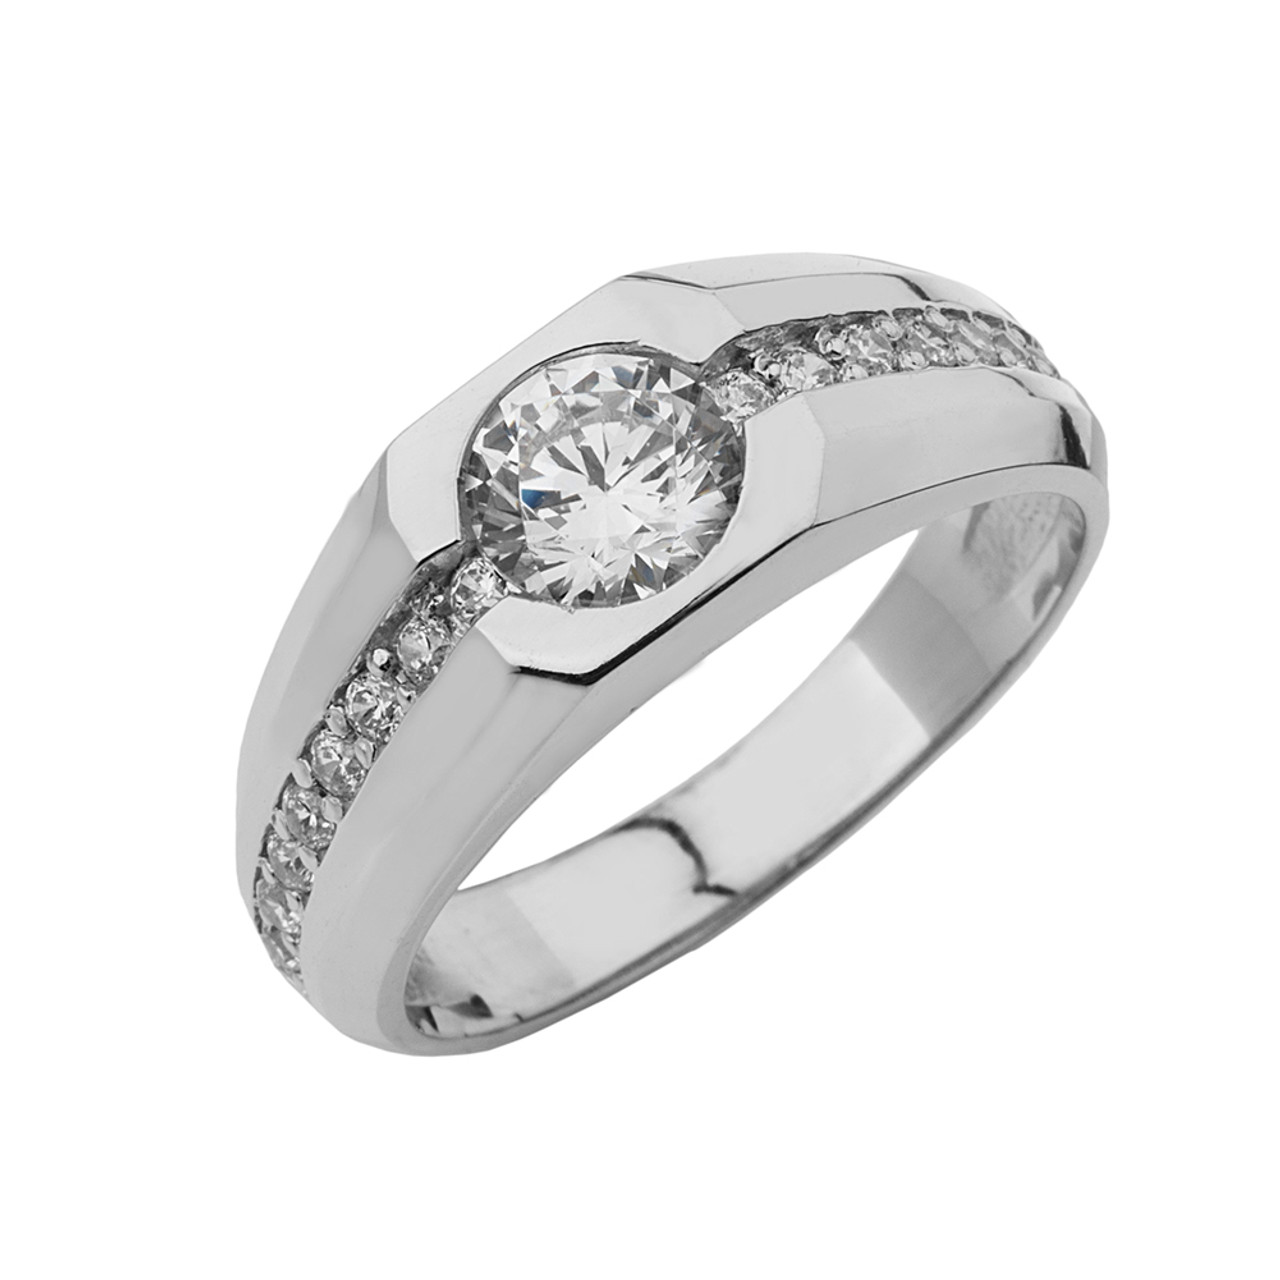 white gold mens diamond solitaire ring with 1 12 white topaz center stone. Black Bedroom Furniture Sets. Home Design Ideas